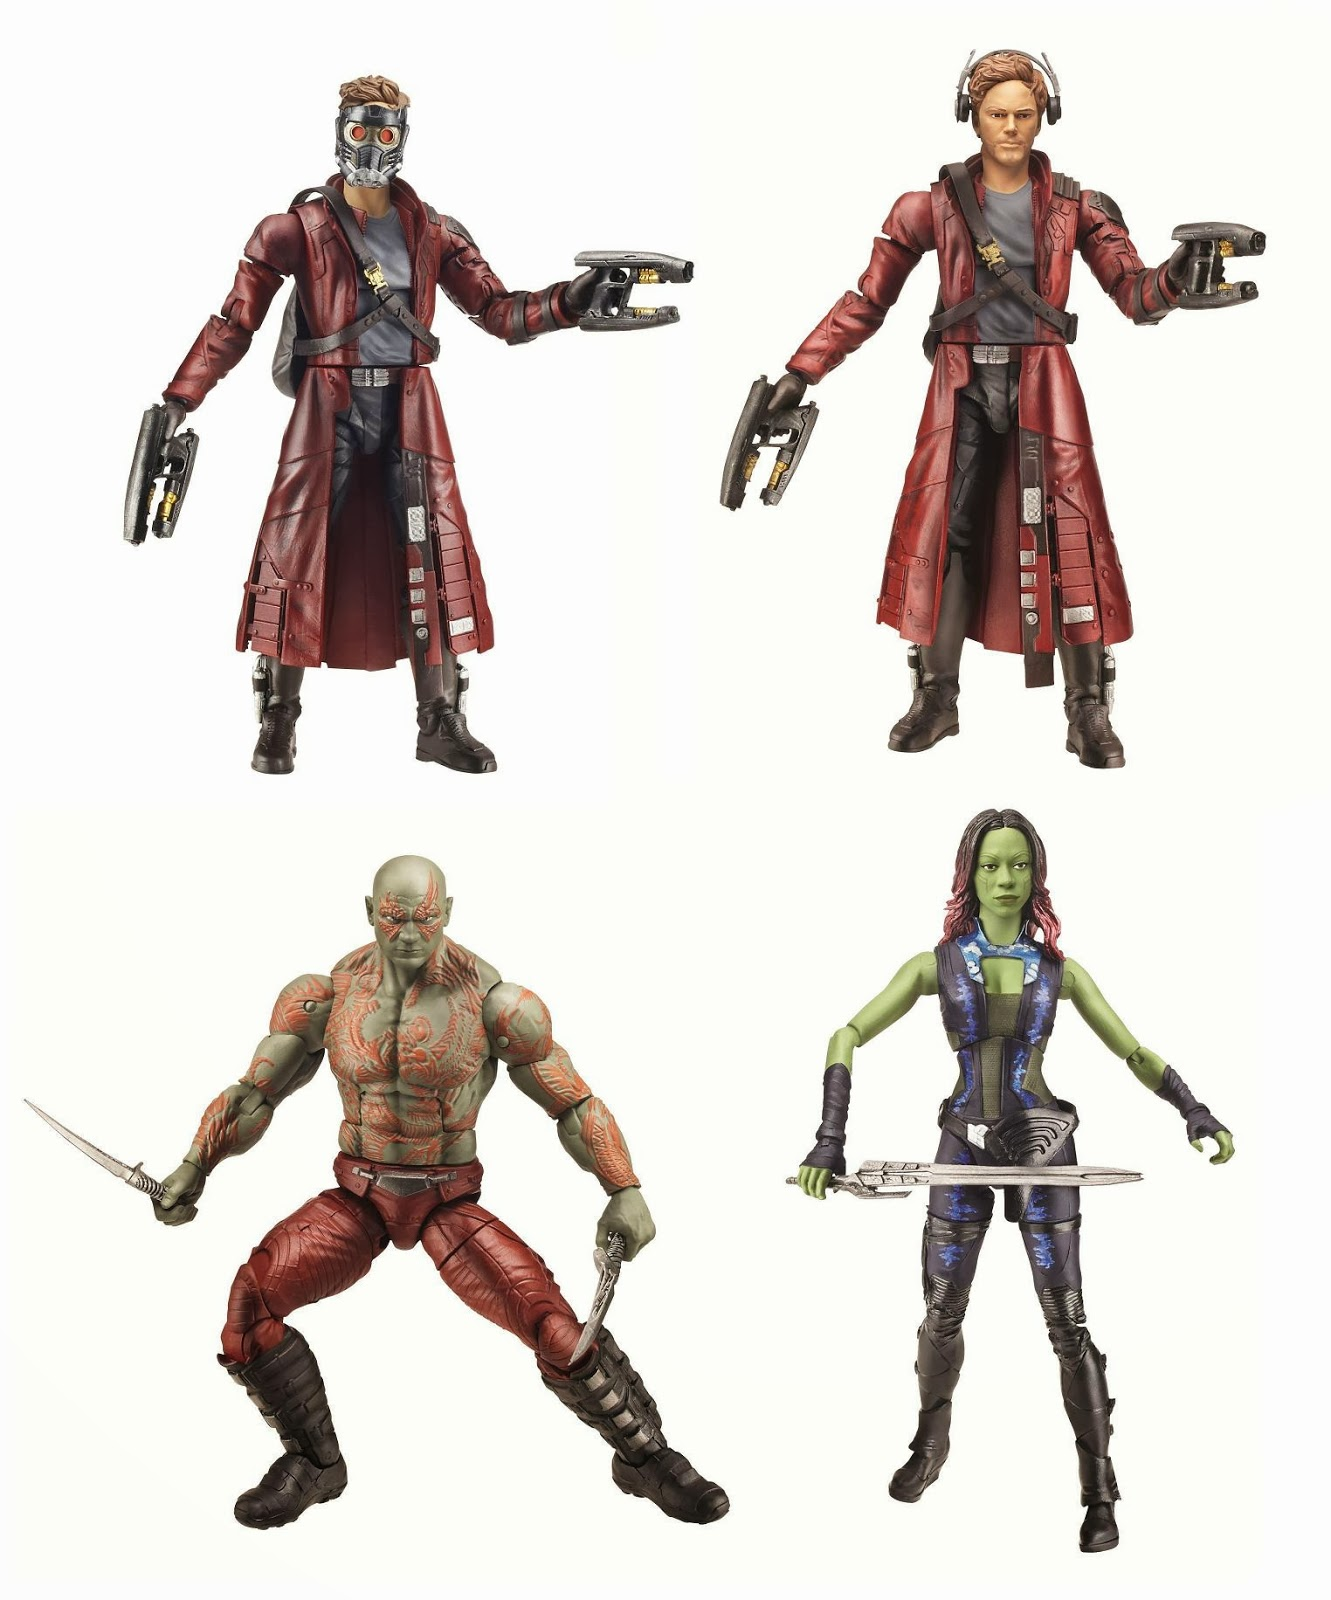 Guardians of the Galaxy Marvel Legends Infinite Series Action Figures - Peter Quill aka Star-Lord, Drax the Destroyer & Gamora